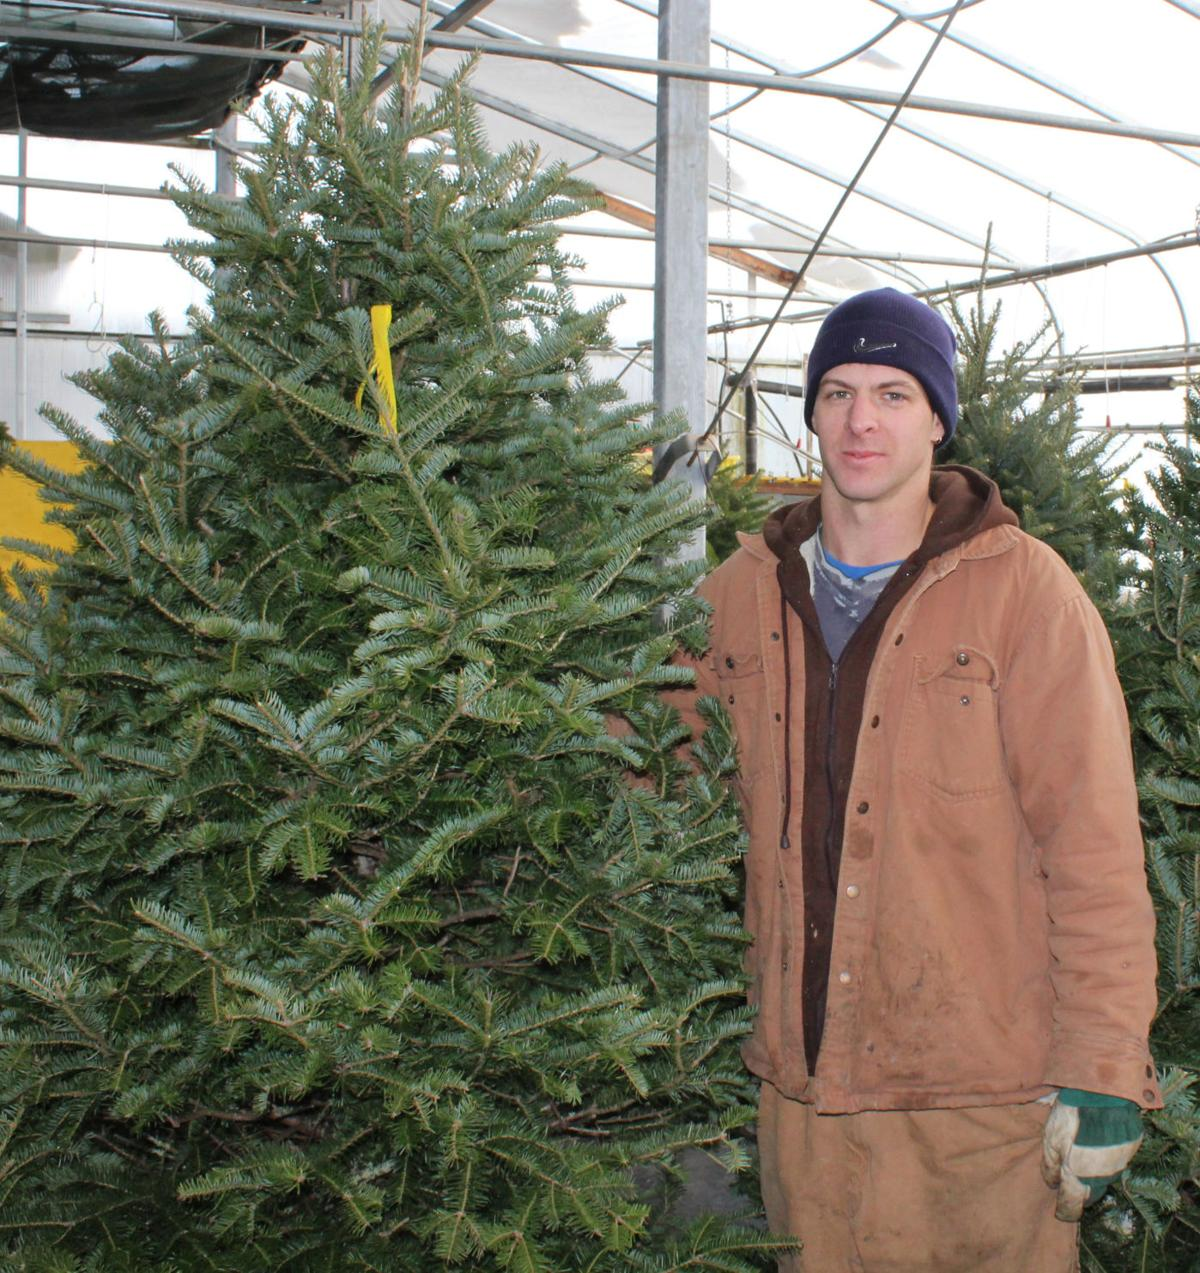 Fascinating Tall Christmas Trees In Demand This Season  The Eastern Graphic  With Gorgeous Matthew Freake Stands Up One Of The Christmas Trees For Sale At Tattries  Evergreens Set Up Nabuurs Garden Centre In Brudenell The Early Season Snow  Has  With Agreeable Garden Cottages To Rent In Port Elizabeth Also Round Garden Table And Chairs In Addition Gardens Of Distinction And Ideas For A Sloping Garden As Well As Garden Gnome Molds Additionally Garden Flowers Az From Peicanadacom With   Gorgeous Tall Christmas Trees In Demand This Season  The Eastern Graphic  With Agreeable Matthew Freake Stands Up One Of The Christmas Trees For Sale At Tattries  Evergreens Set Up Nabuurs Garden Centre In Brudenell The Early Season Snow  Has  And Fascinating Garden Cottages To Rent In Port Elizabeth Also Round Garden Table And Chairs In Addition Gardens Of Distinction From Peicanadacom